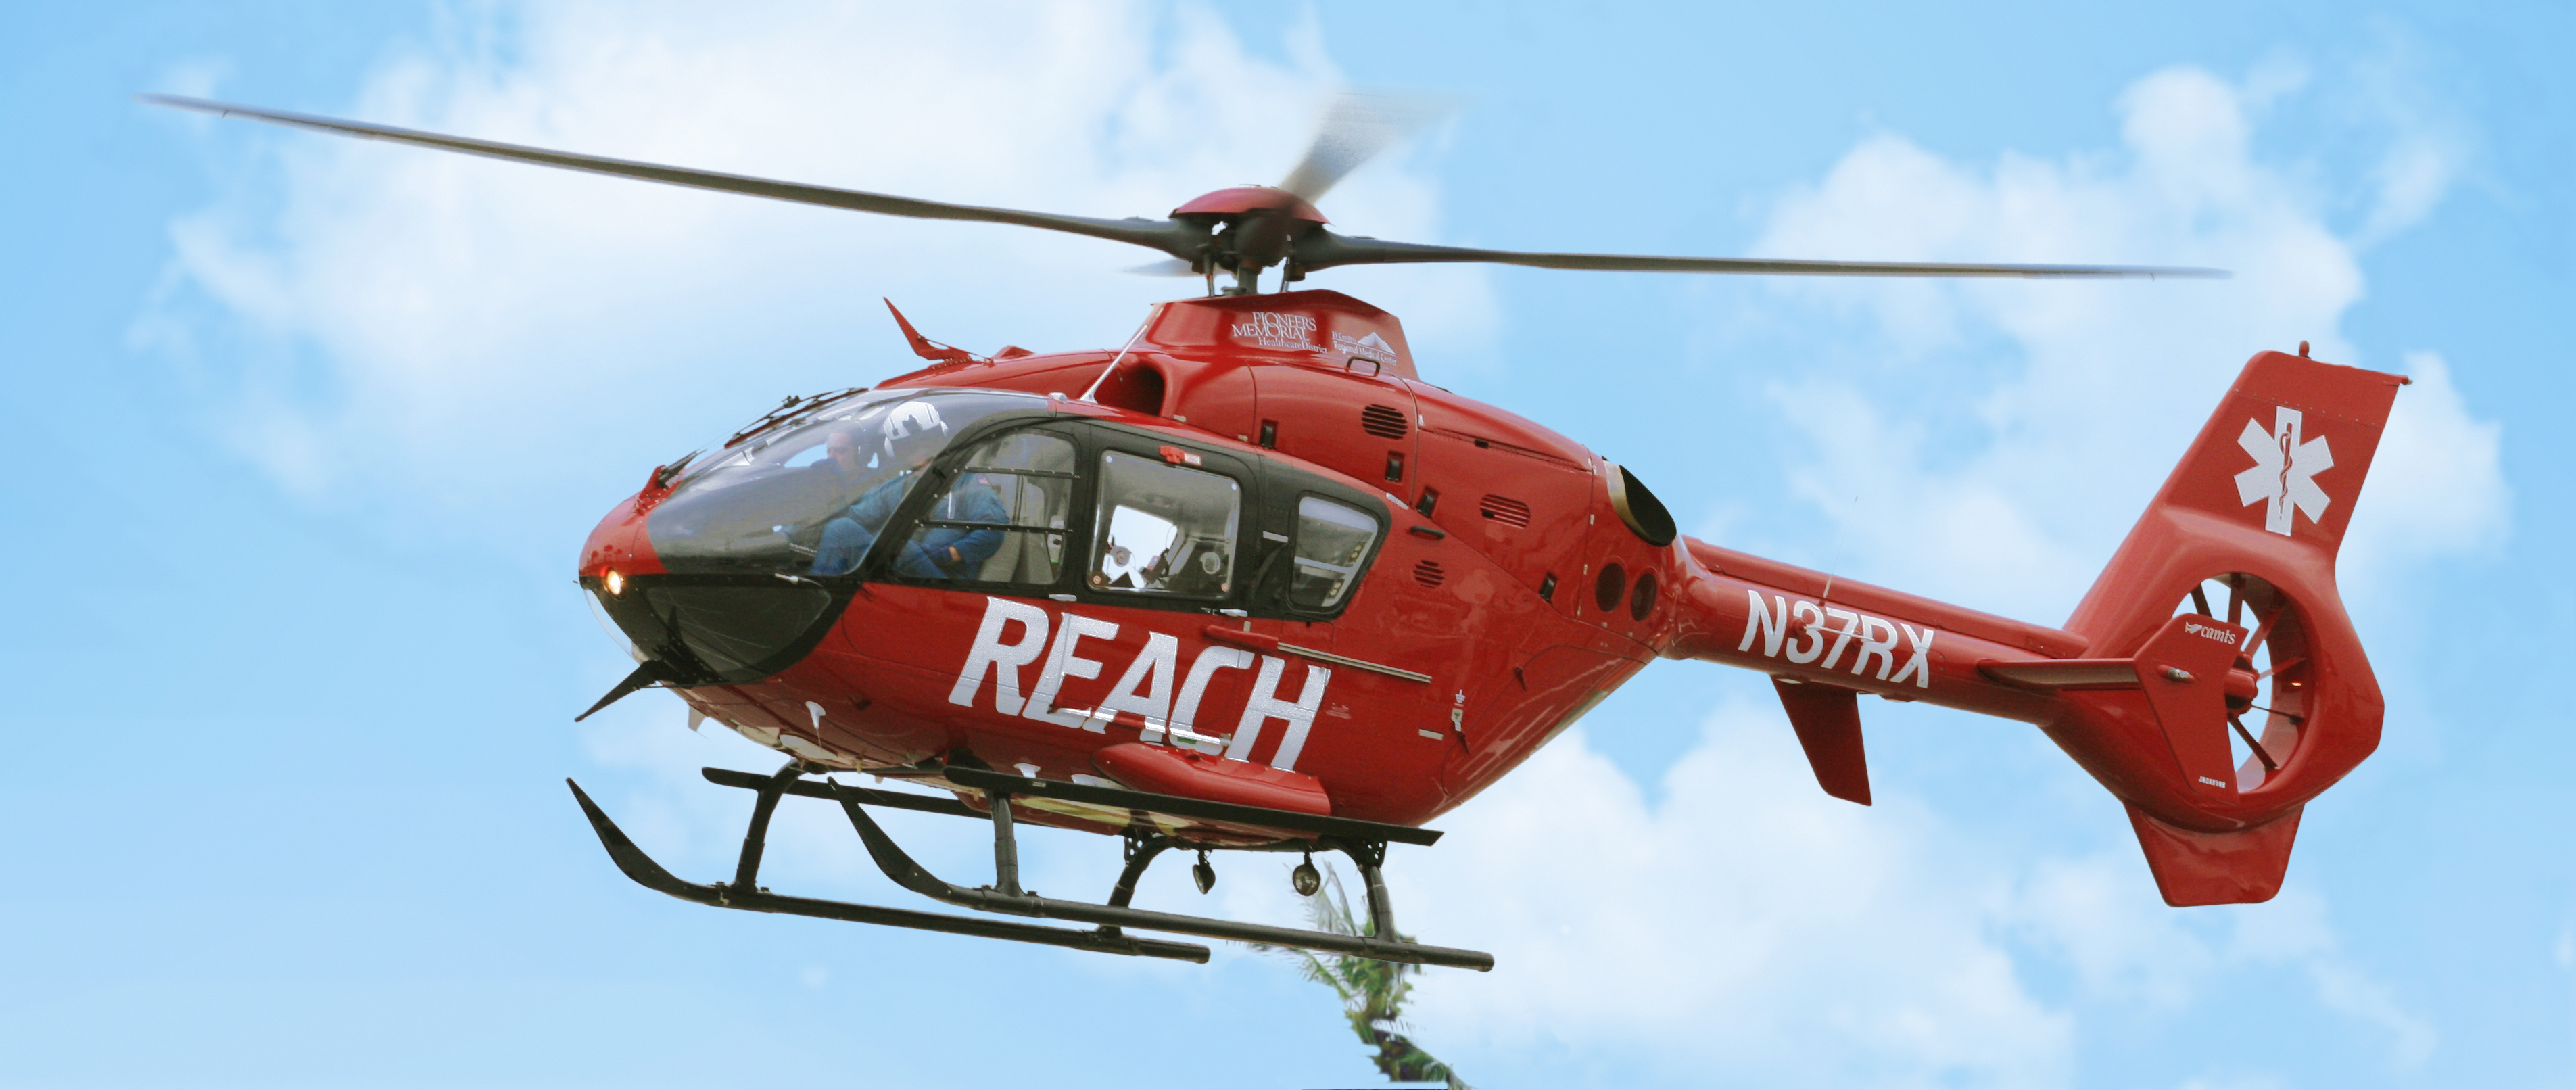 REACHs EC135 helicopter